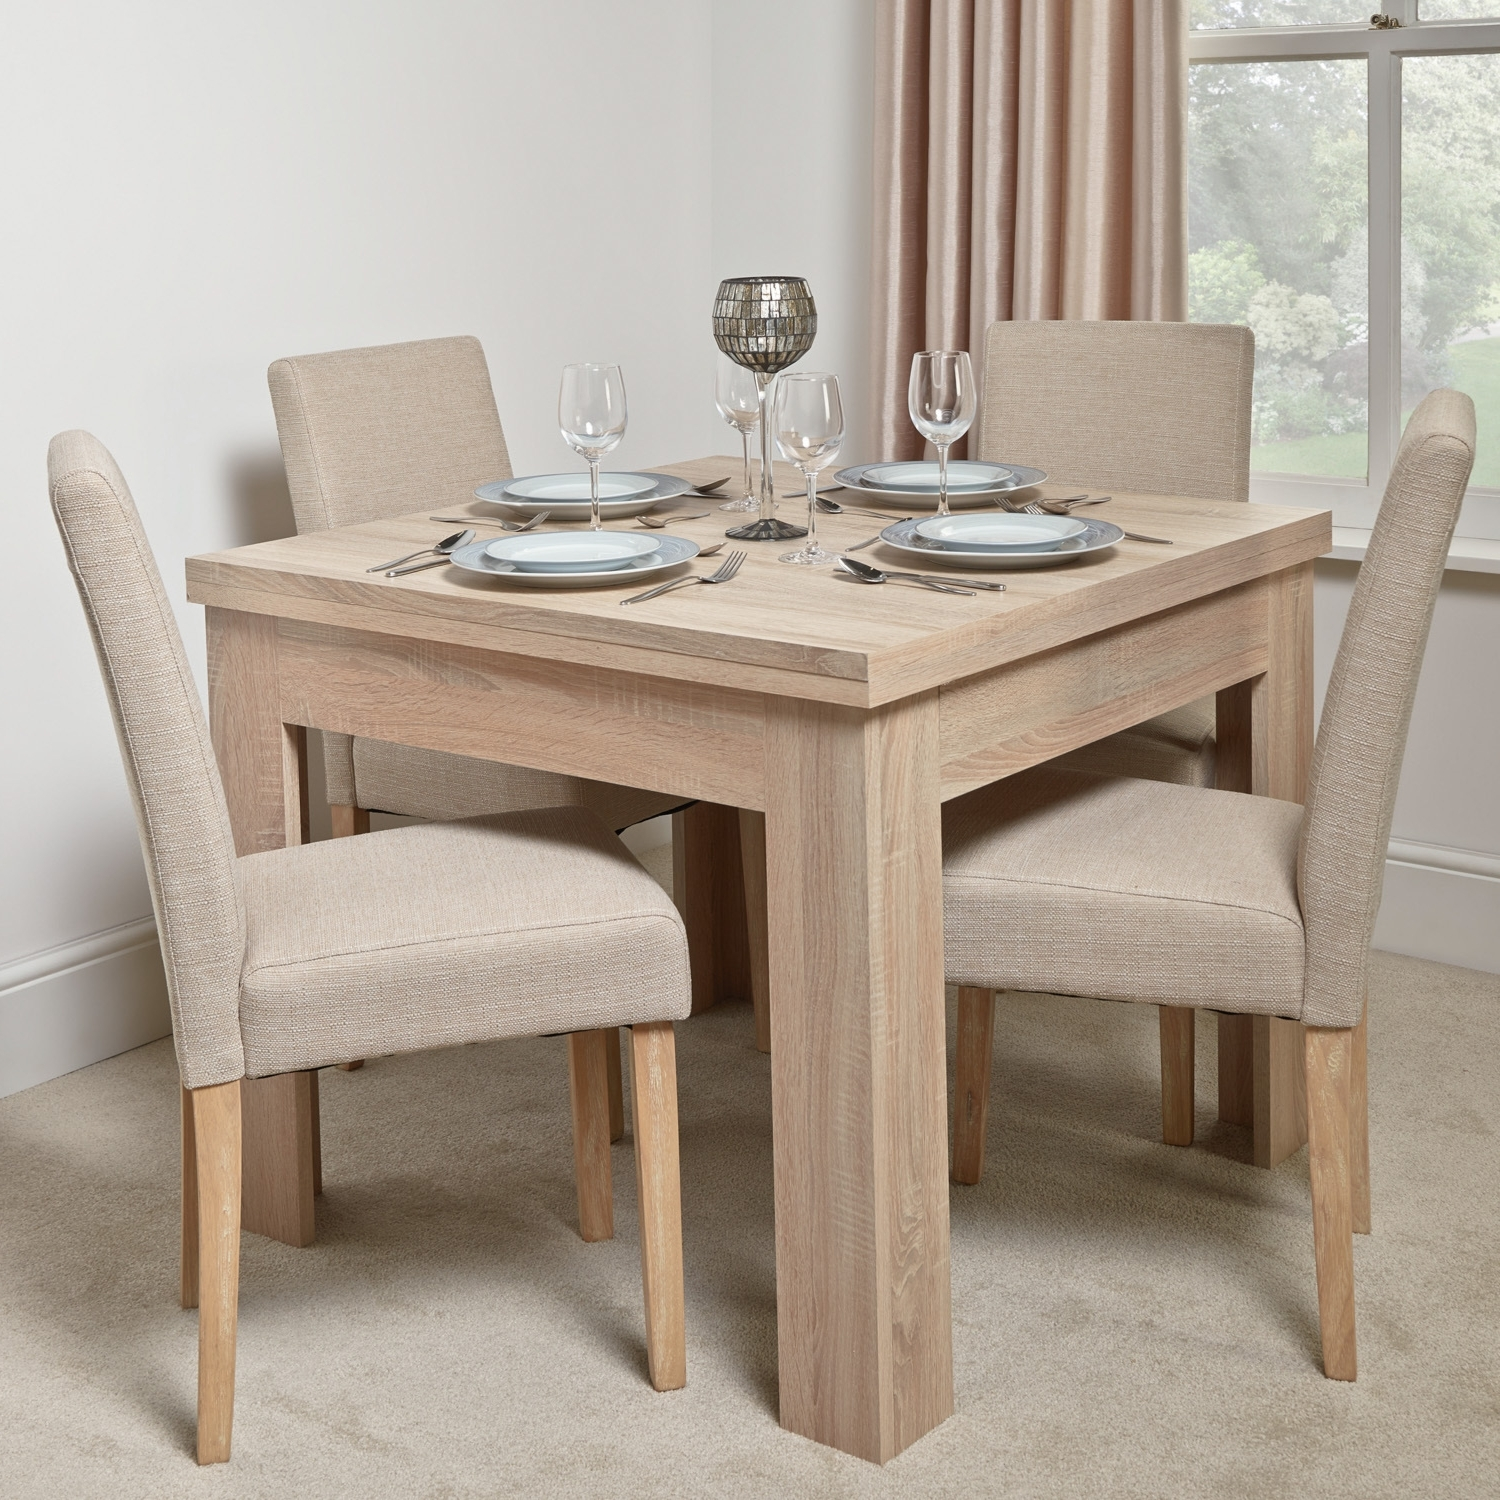 Most Current Calpe Flip Extending Dining Table Pertaining To Extending Dining Room Tables And Chairs (View 7 of 25)